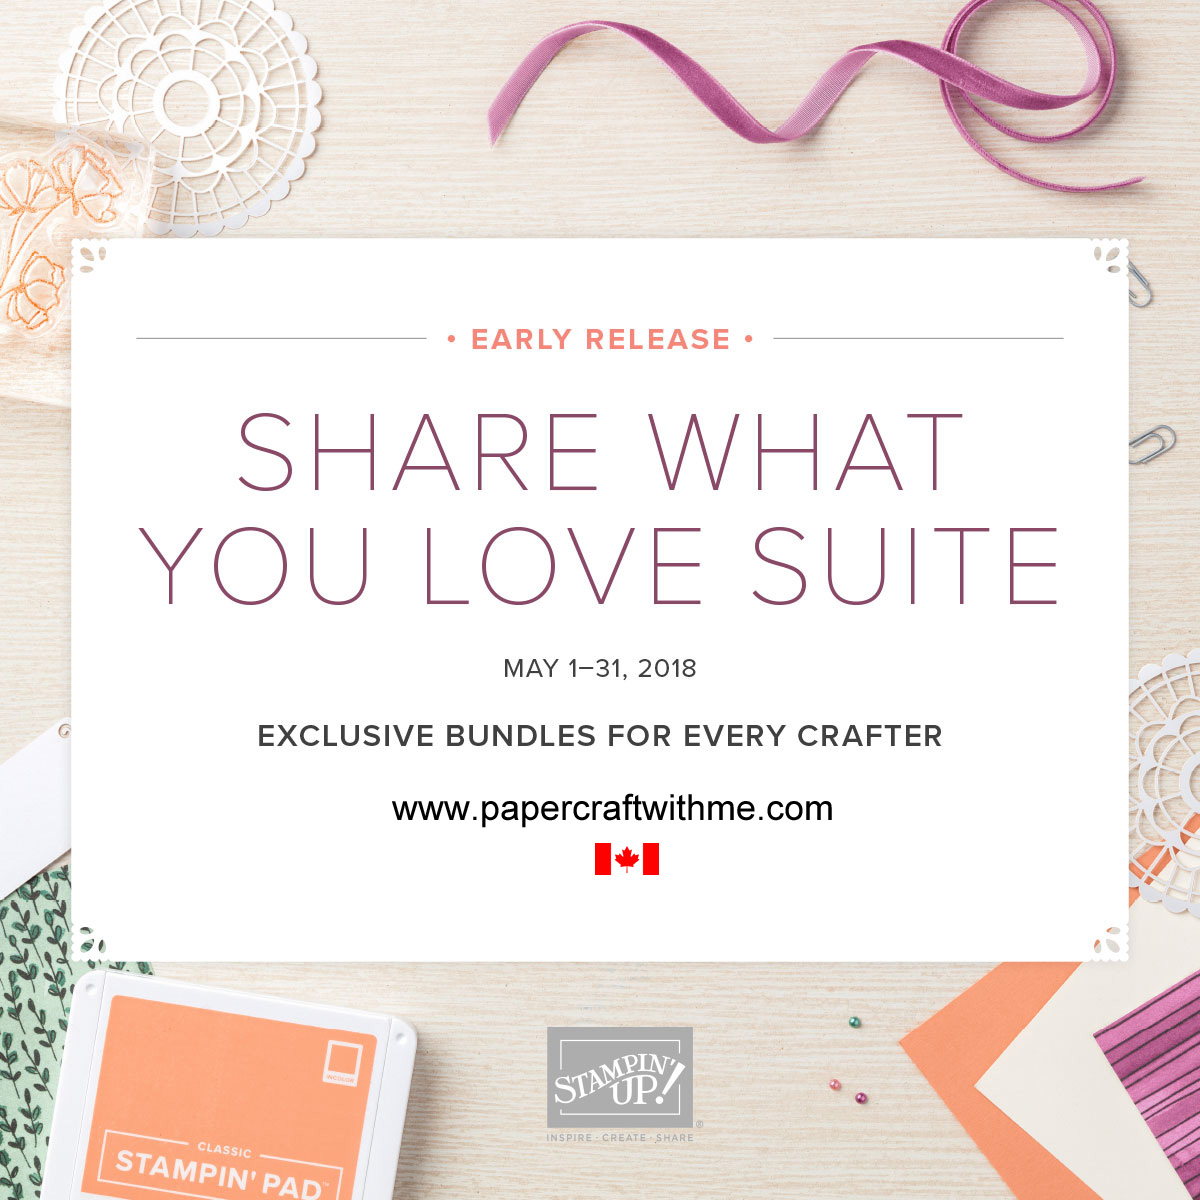 Share What You Love - exclusive early release bundles of Stampin' Up! products available in Canada until May 31, 2018.